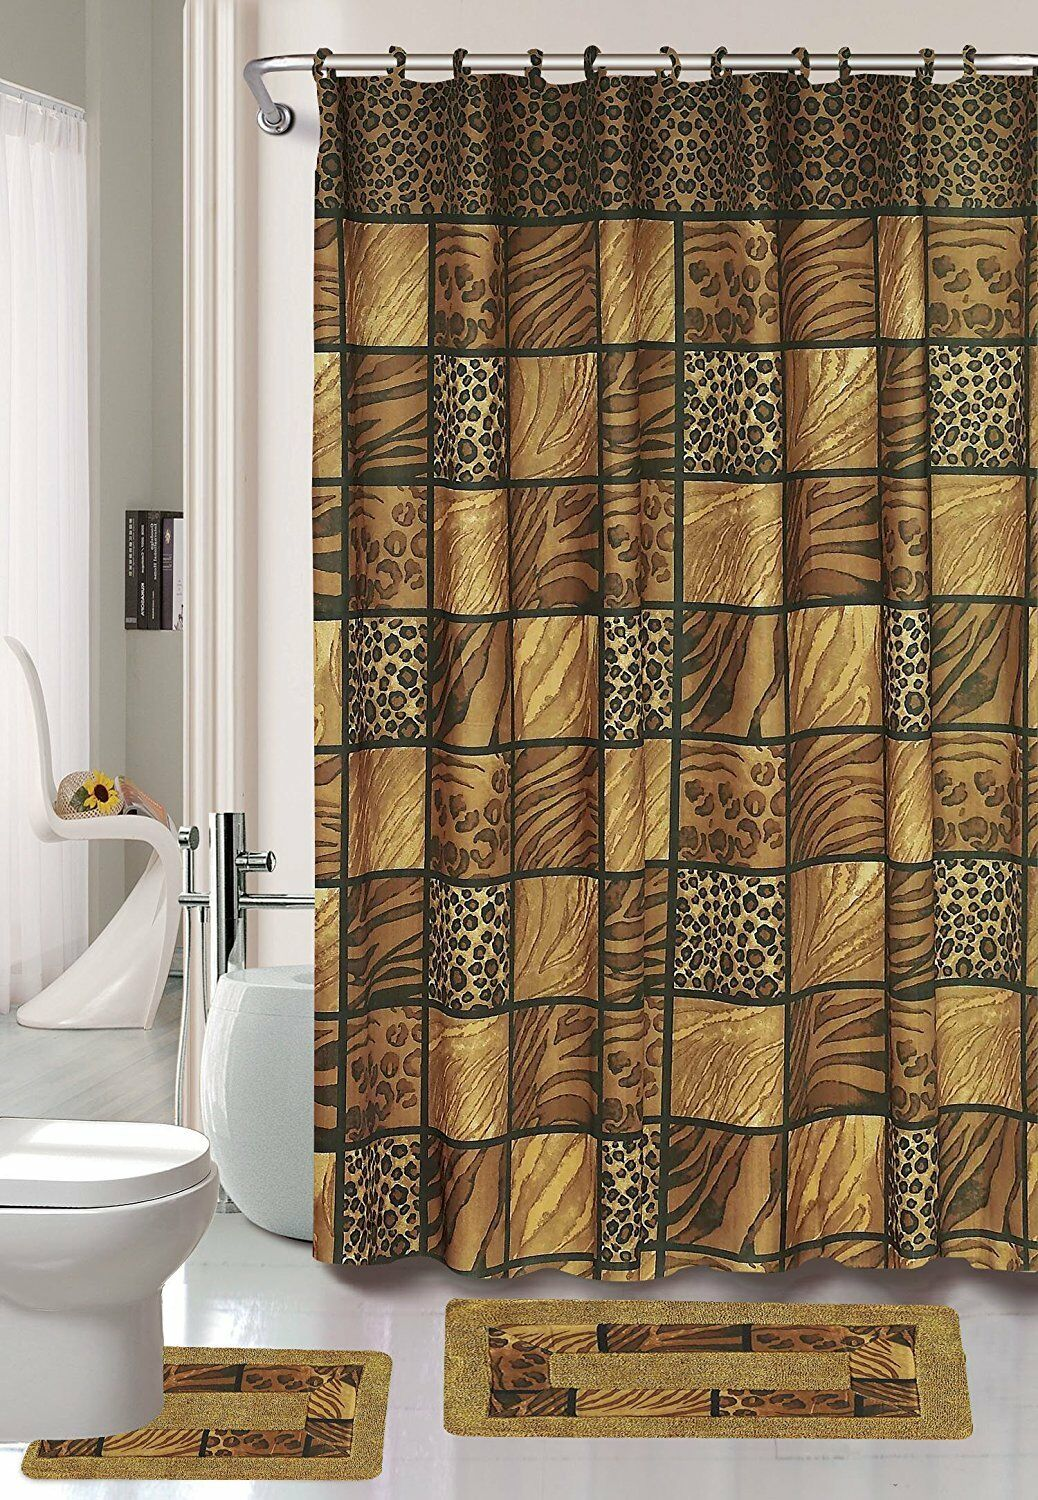 Leopard Safari 15-Piece Bathroom Accessory Set Bath Mats & Shower Curtain